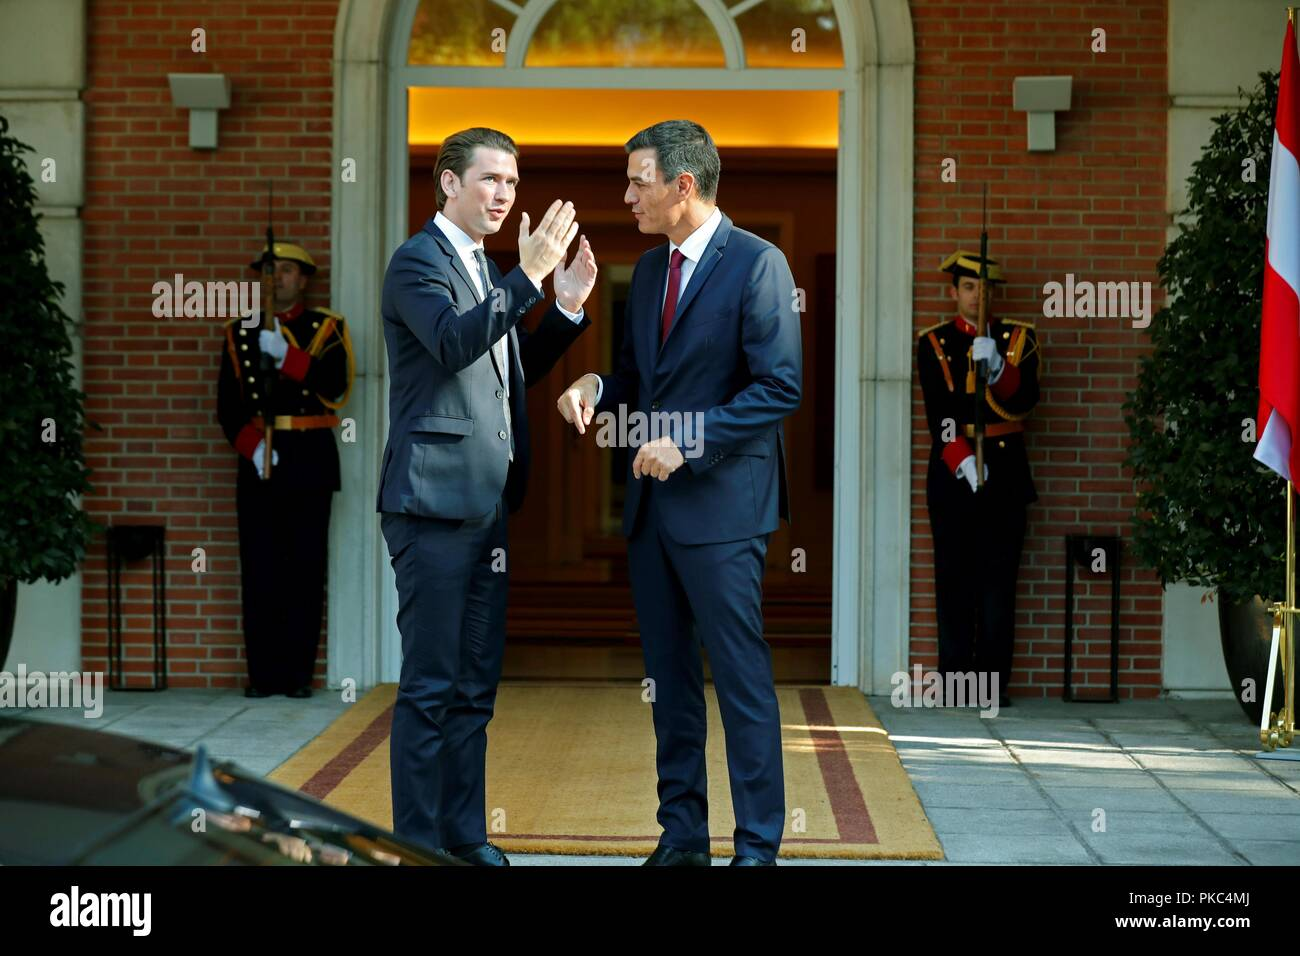 ¿Cuánto mide Pedro Sánchez? - Altura: 1,89 - Real height - Página 4 Spanish-prime-minister-pedro-sanchez-r-welcomes-with-his-austrian-counterpart-sebastian-kurz-l-before-a-meeting-at-la-moncloa-palace-in-madrid-spain-12-september-2018-efekiko-huesca-PKC4MJ